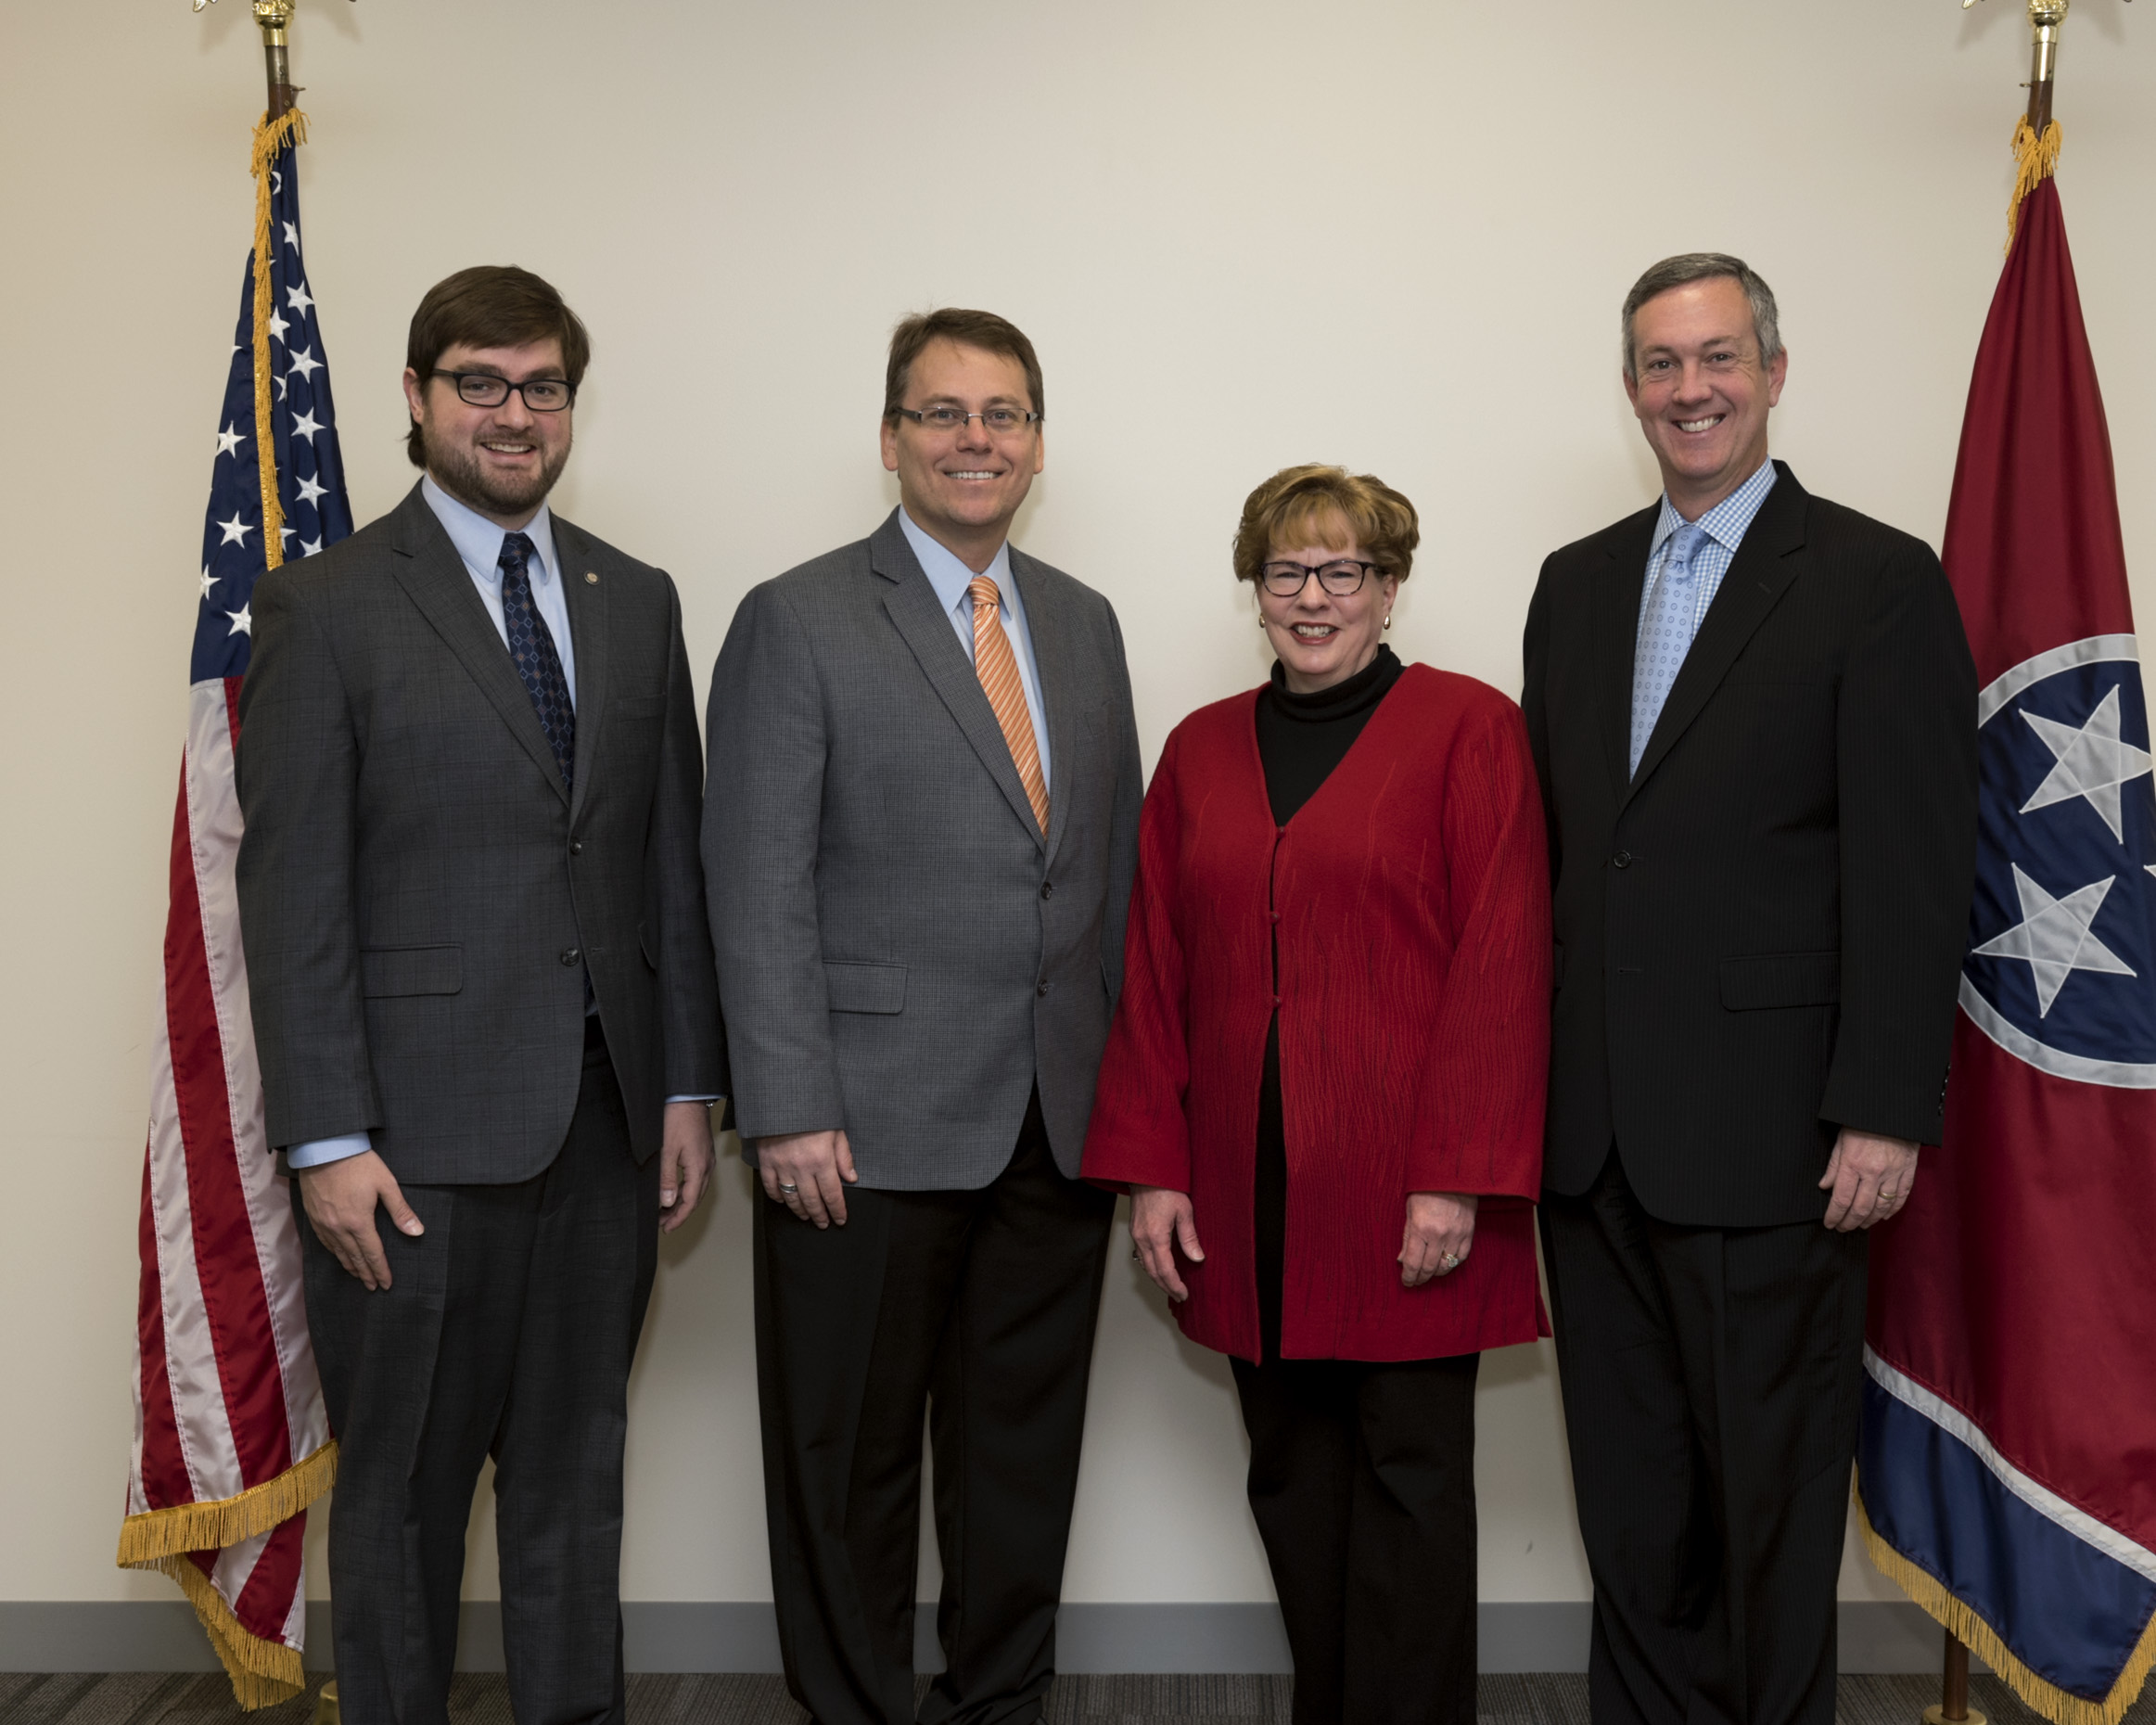 L to R: Elections Attorney Andrew Dodd, Coordinator of Elections Mark Goins, Shelby County Administrator of Elections Linda Phillips and Secretary Hargett Dec. 20, 2016.